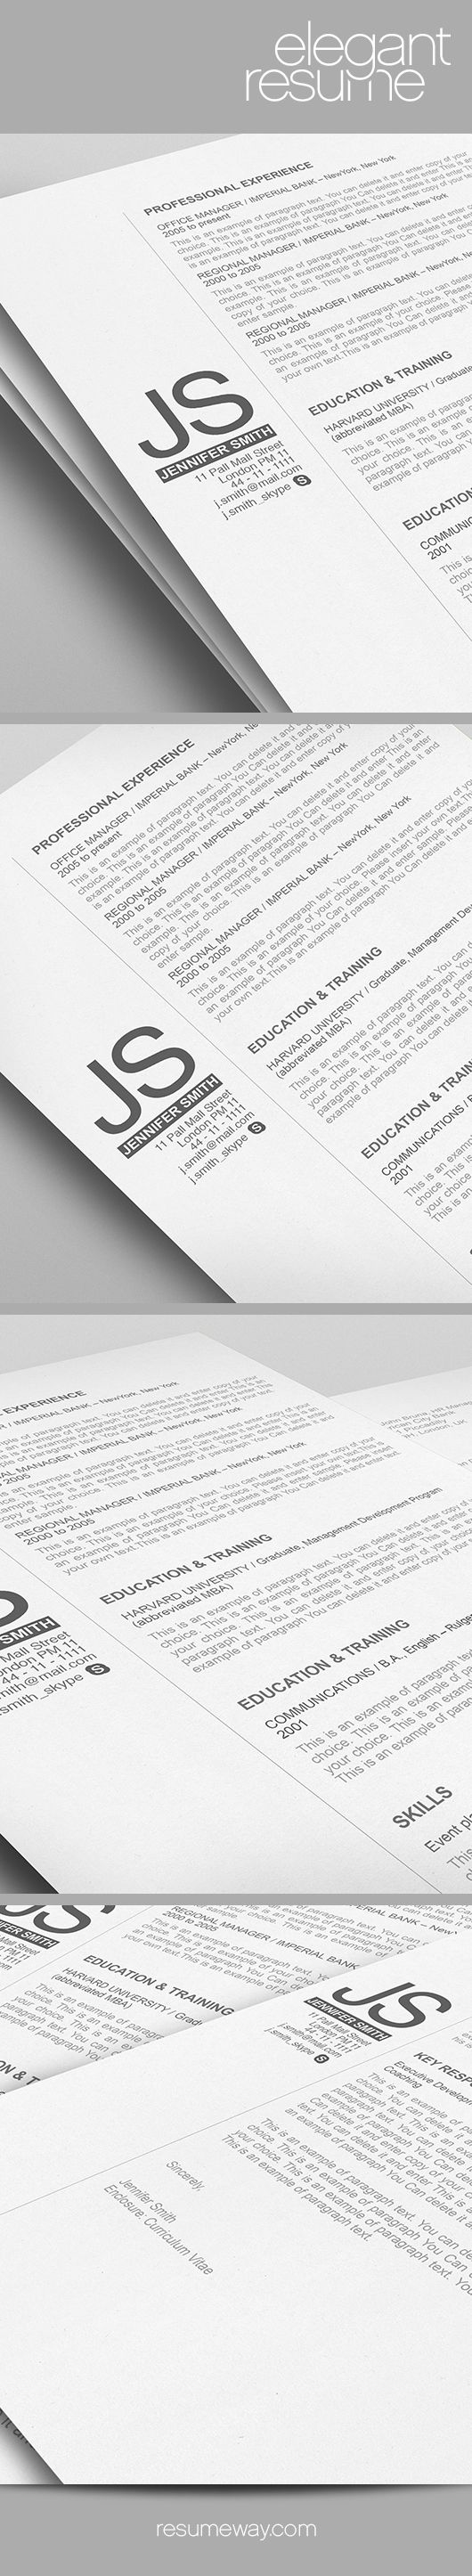 Elegant Resume Template - 110540 - Premium line of Resume & Cover Letter Templates. Easy edit with MS Word, Apple Pages - Resume, Resumes - $7.95